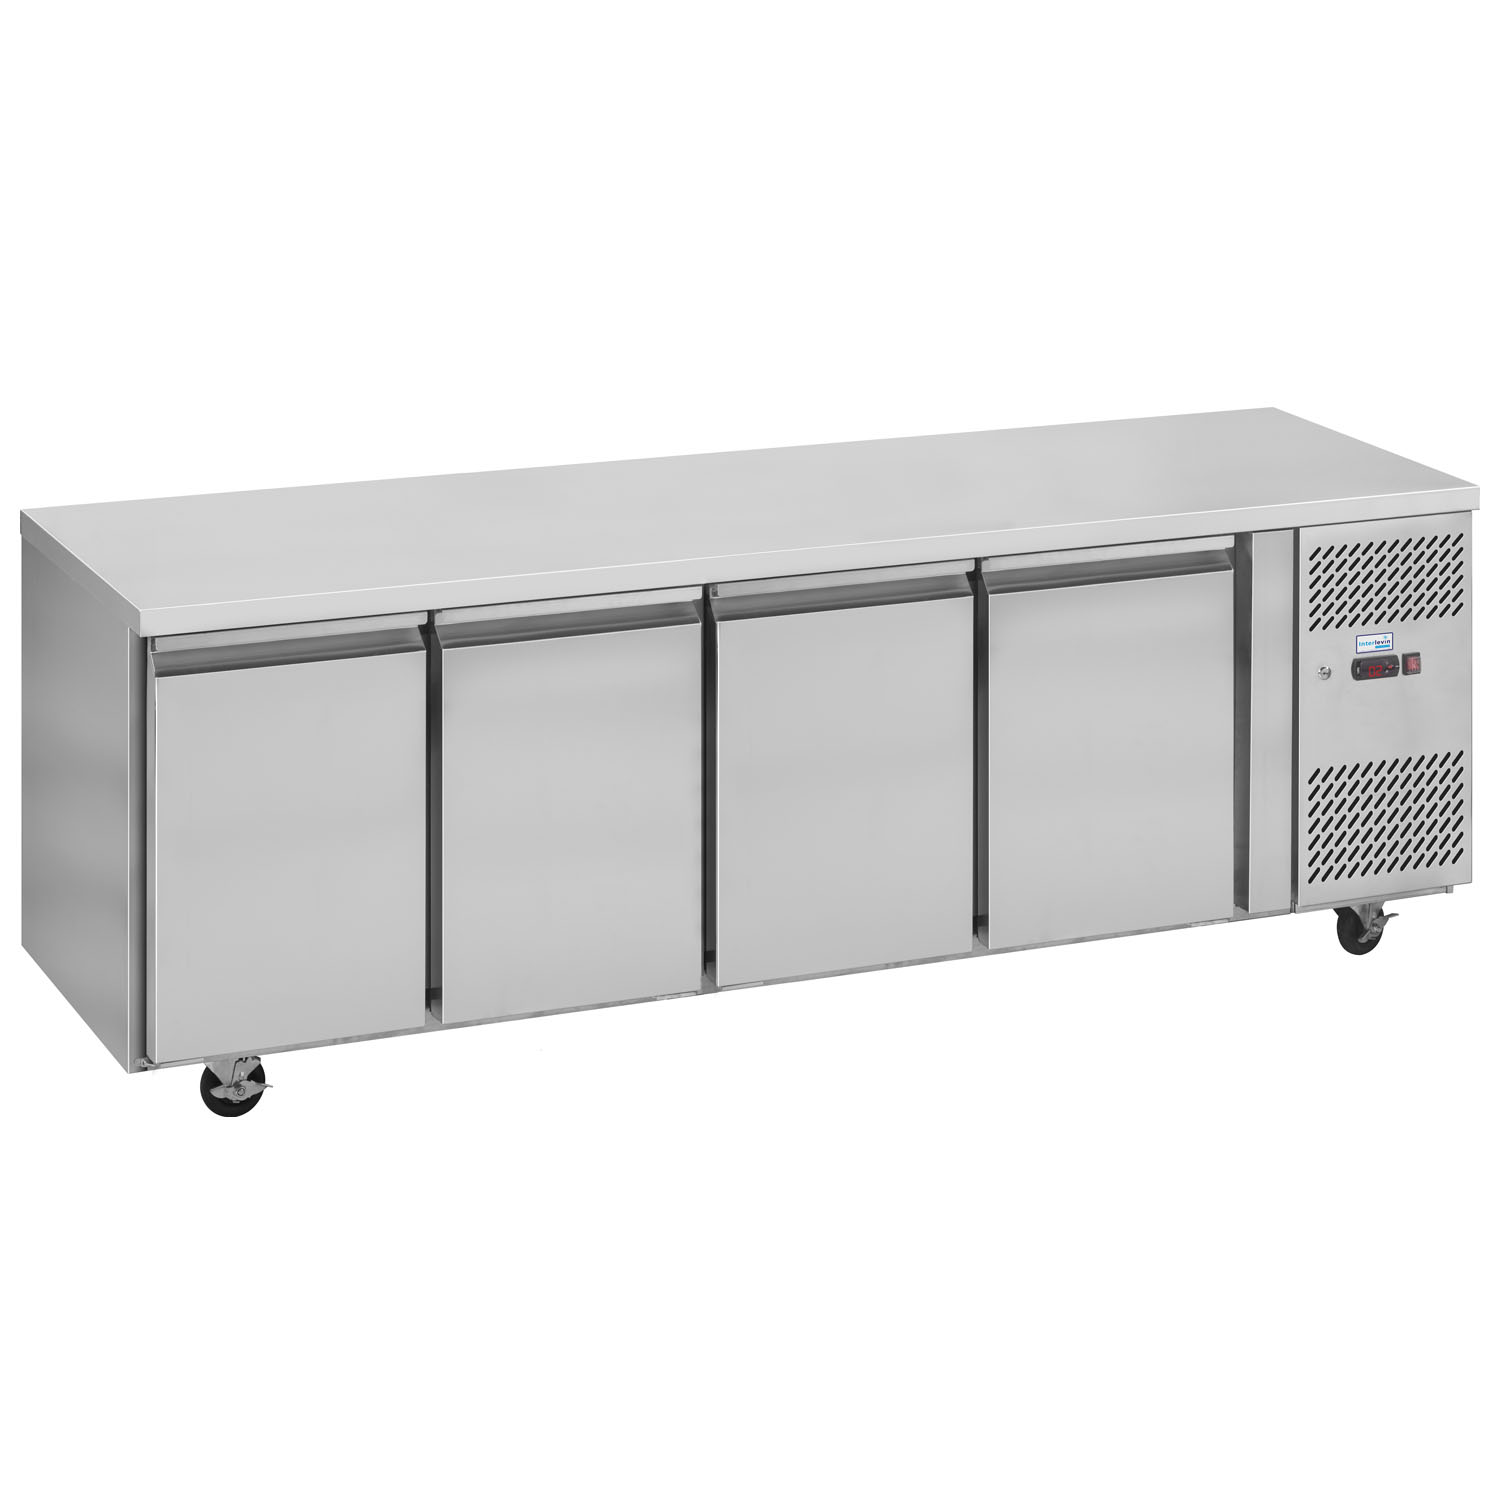 Interlevin PH40 Gastronorm Stainless Steel Counter 4-Door Chiller closed